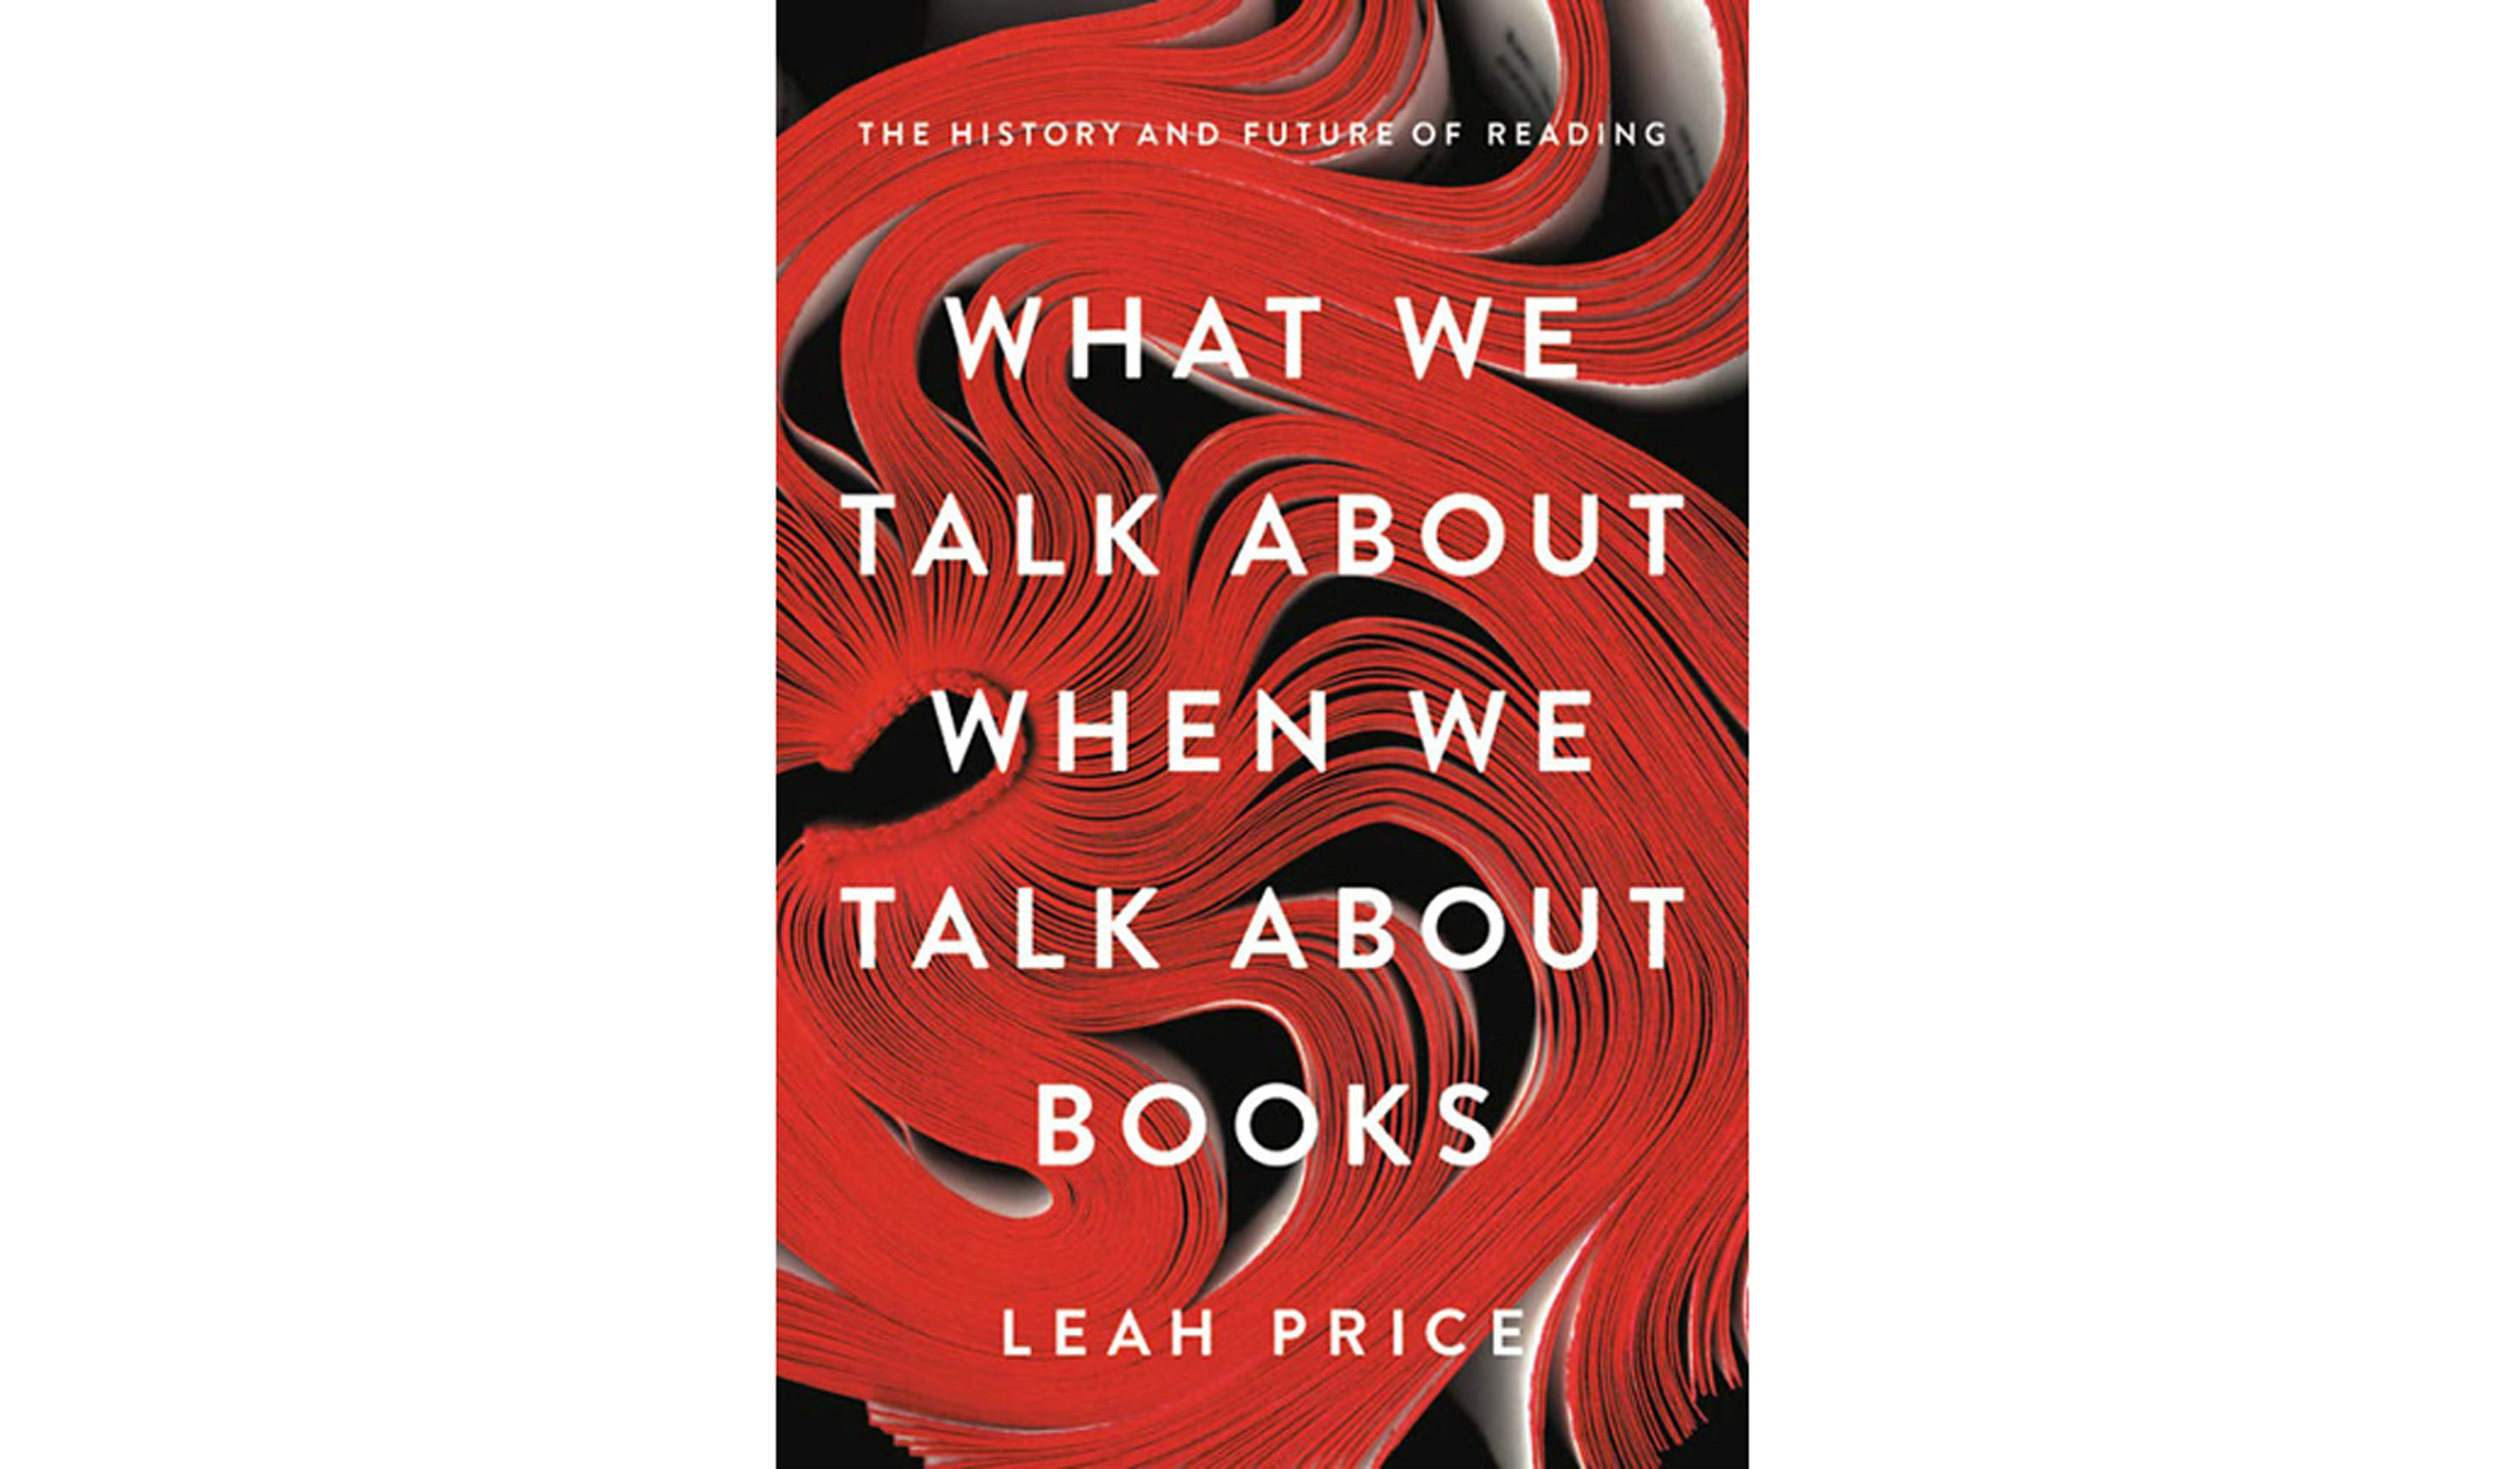 BOOK REVIEW: 'What We Talk About When We Talk About Books'